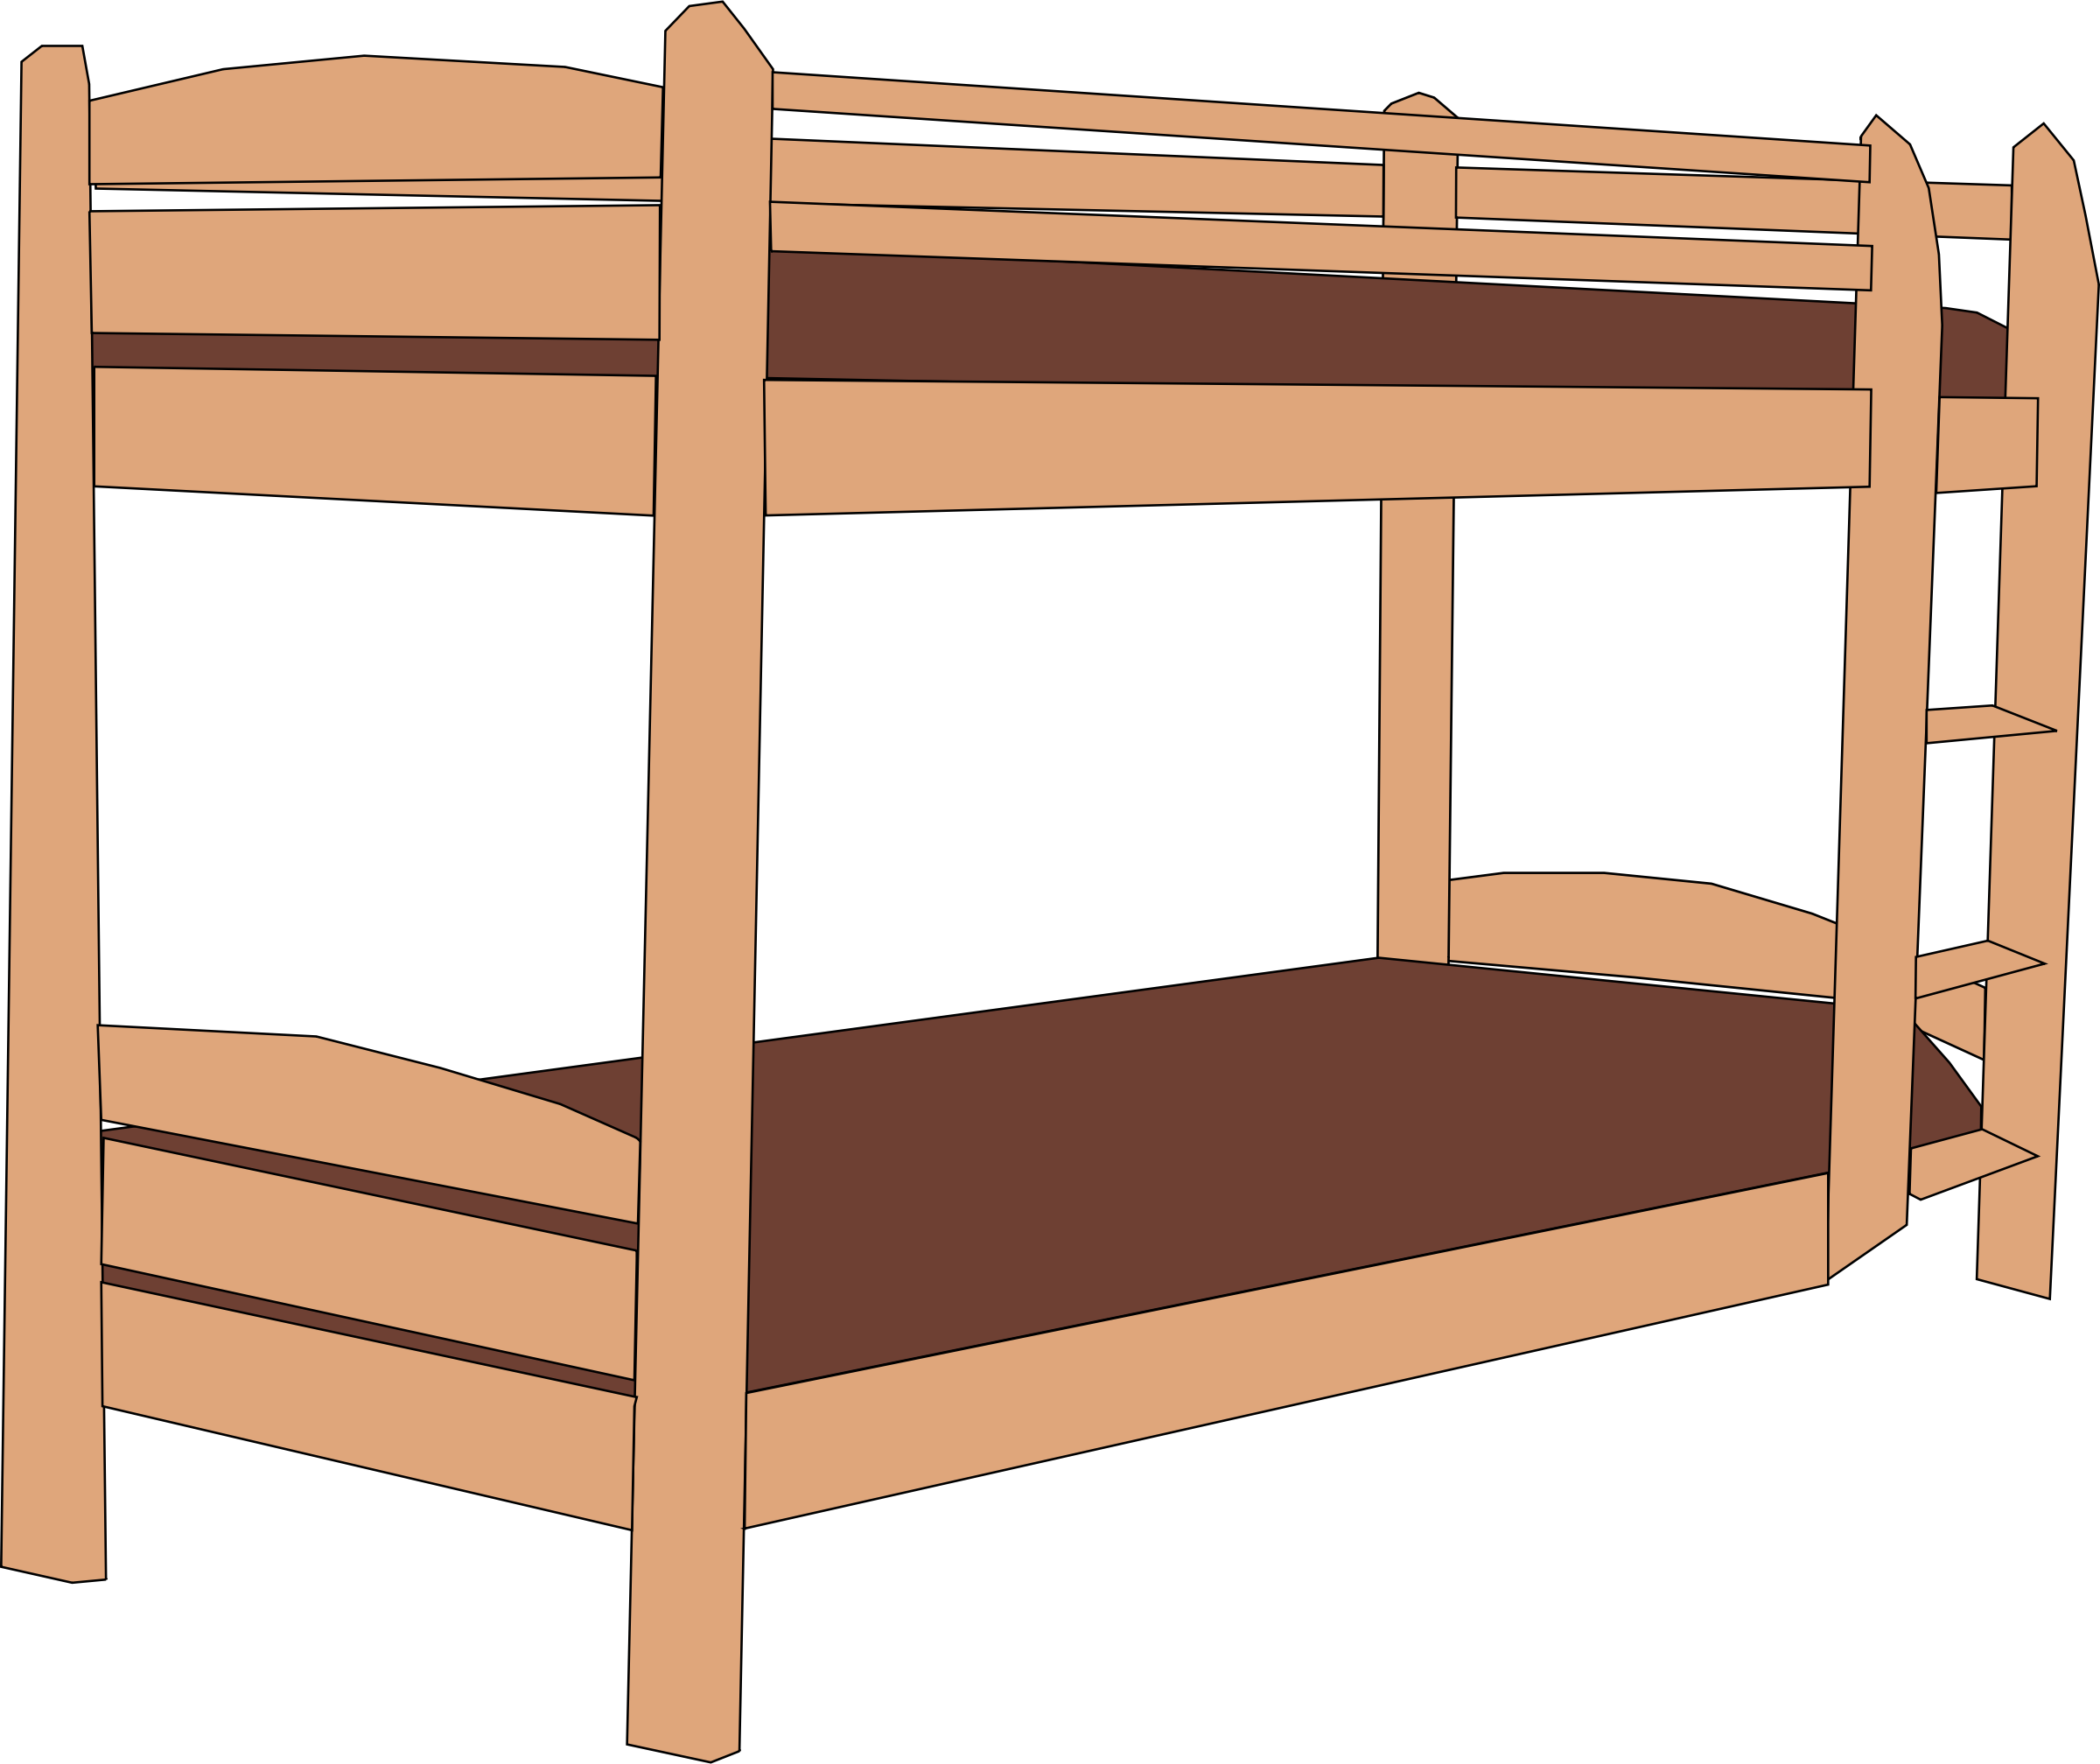 Bed clipart twin bed. Bunk beds big image